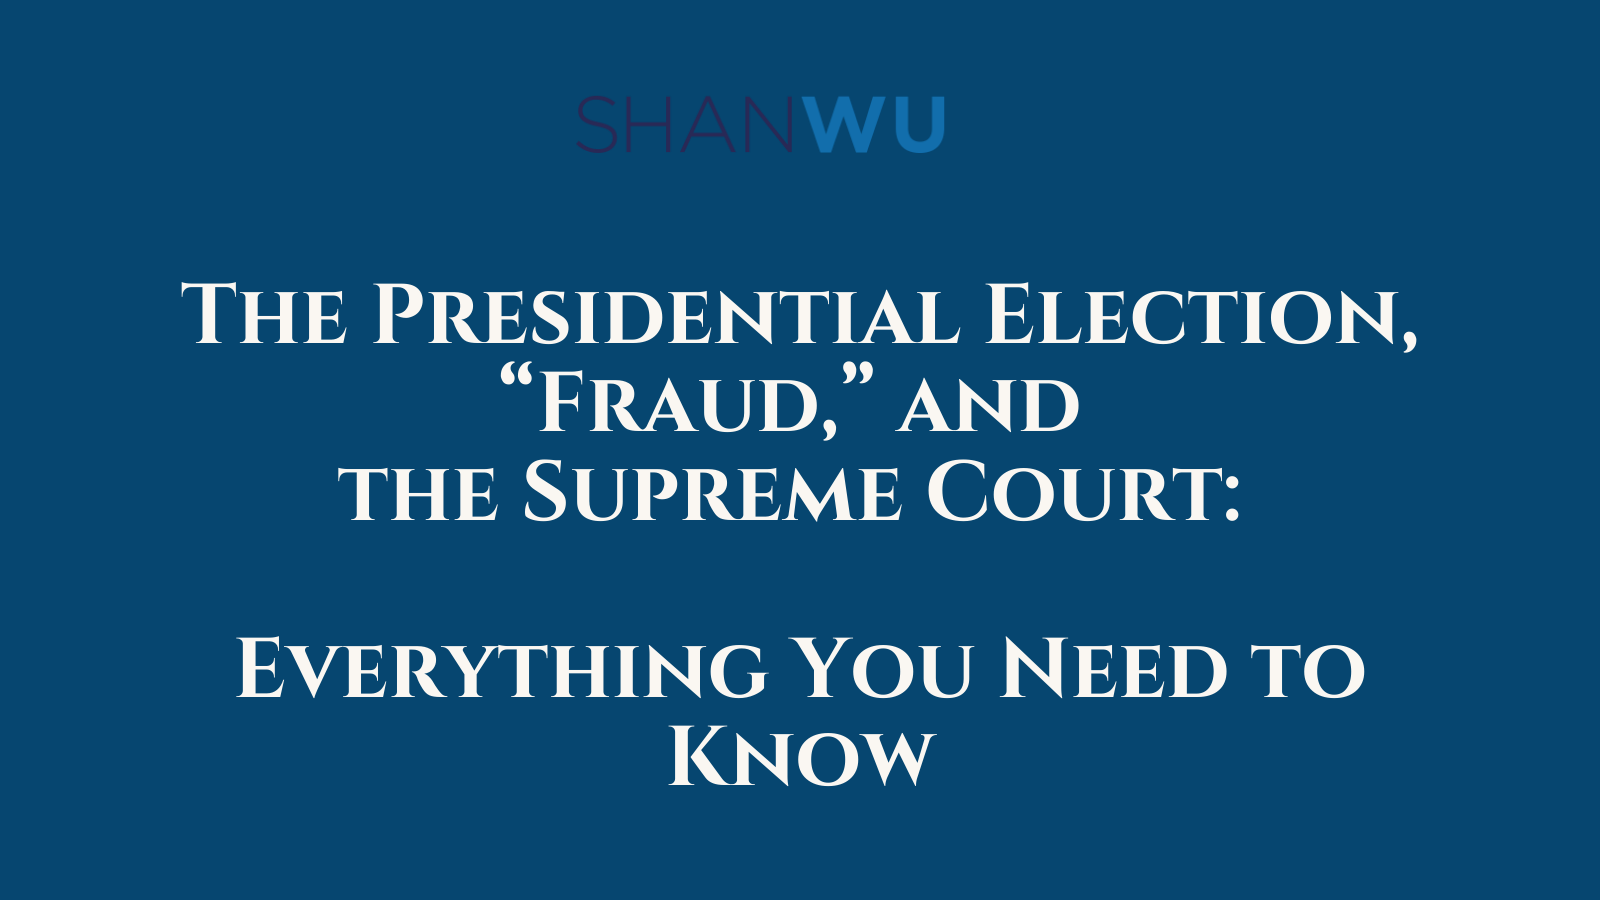 The Presidential Election Fraud and the Supreme Court - Shanlon Wu